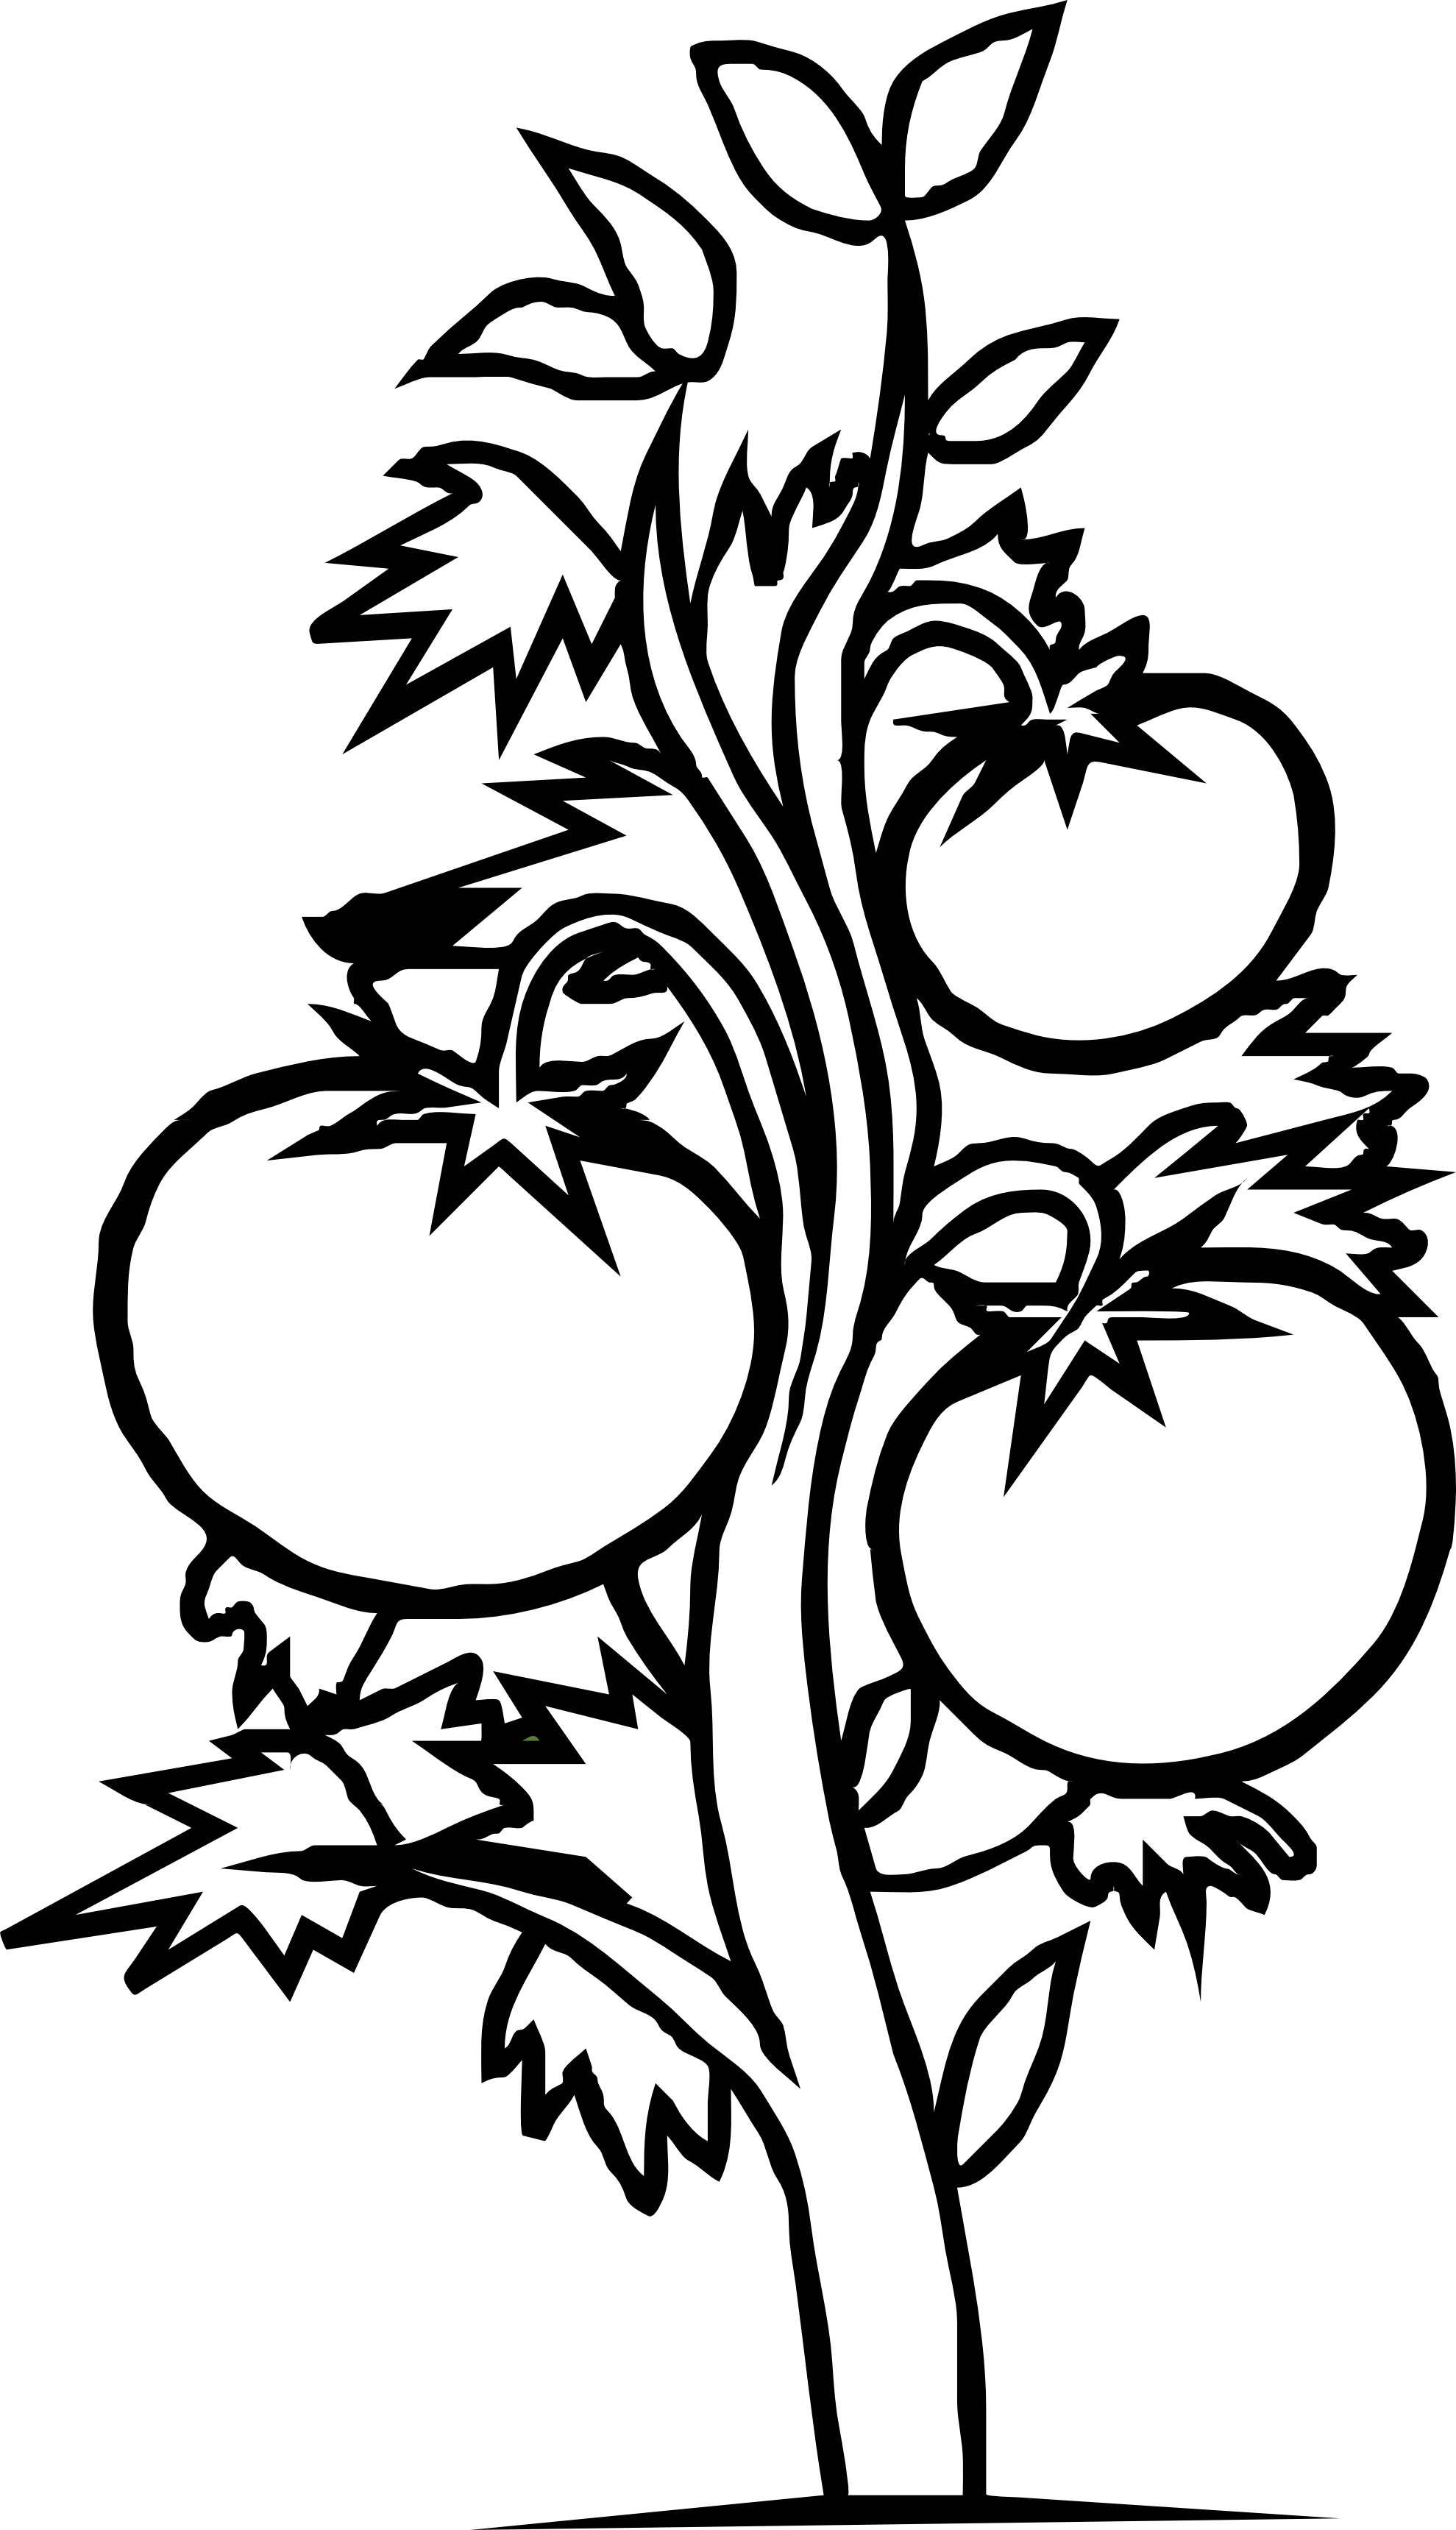 Evaporation clipart black and white. Plant panda free images